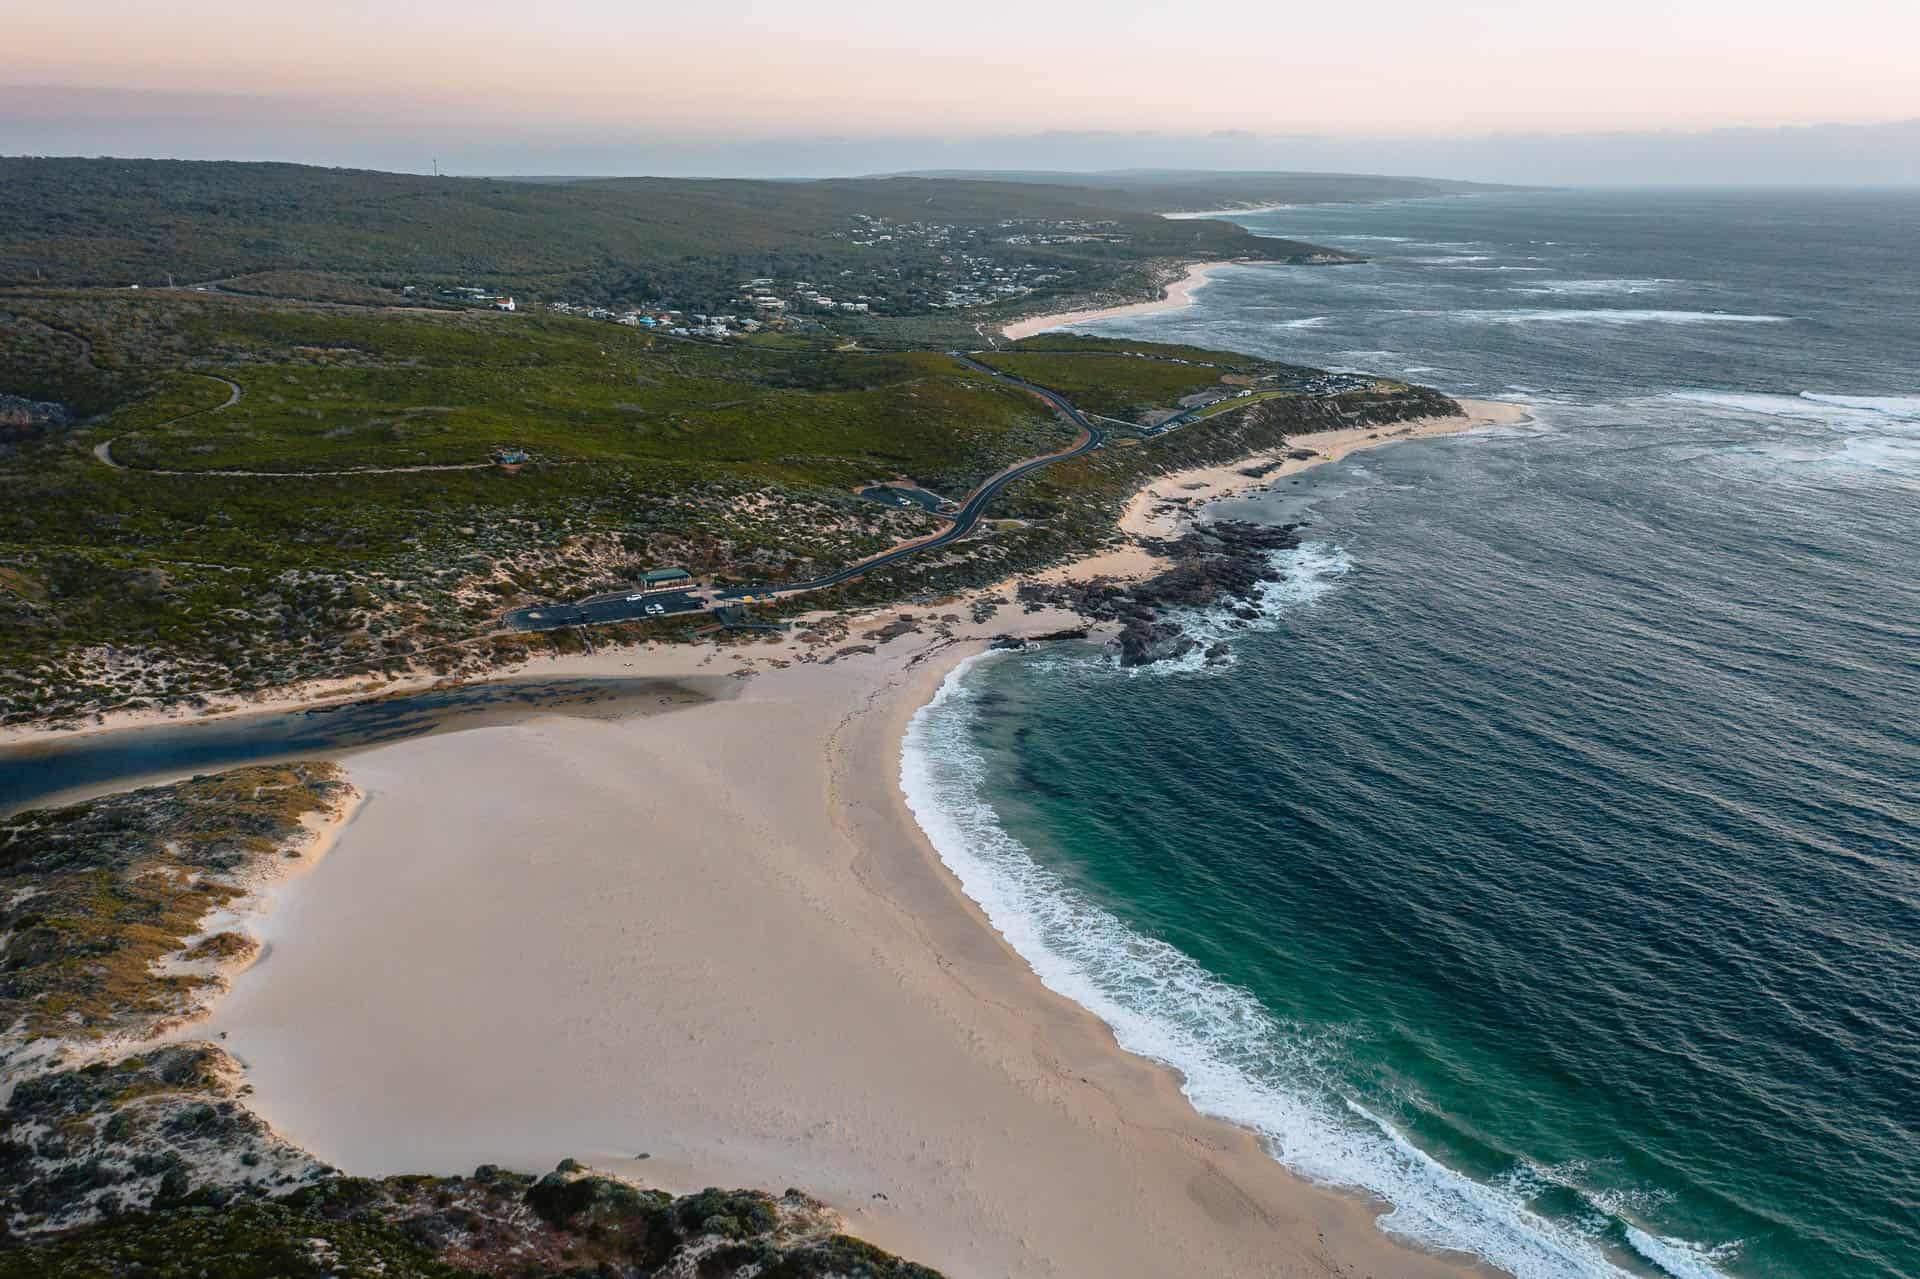 things to do in margaret river, what to do in margaret river, best things to do in margaret river, things to do margaret river, surfers point, surfers point margaret river, margaret river mouth